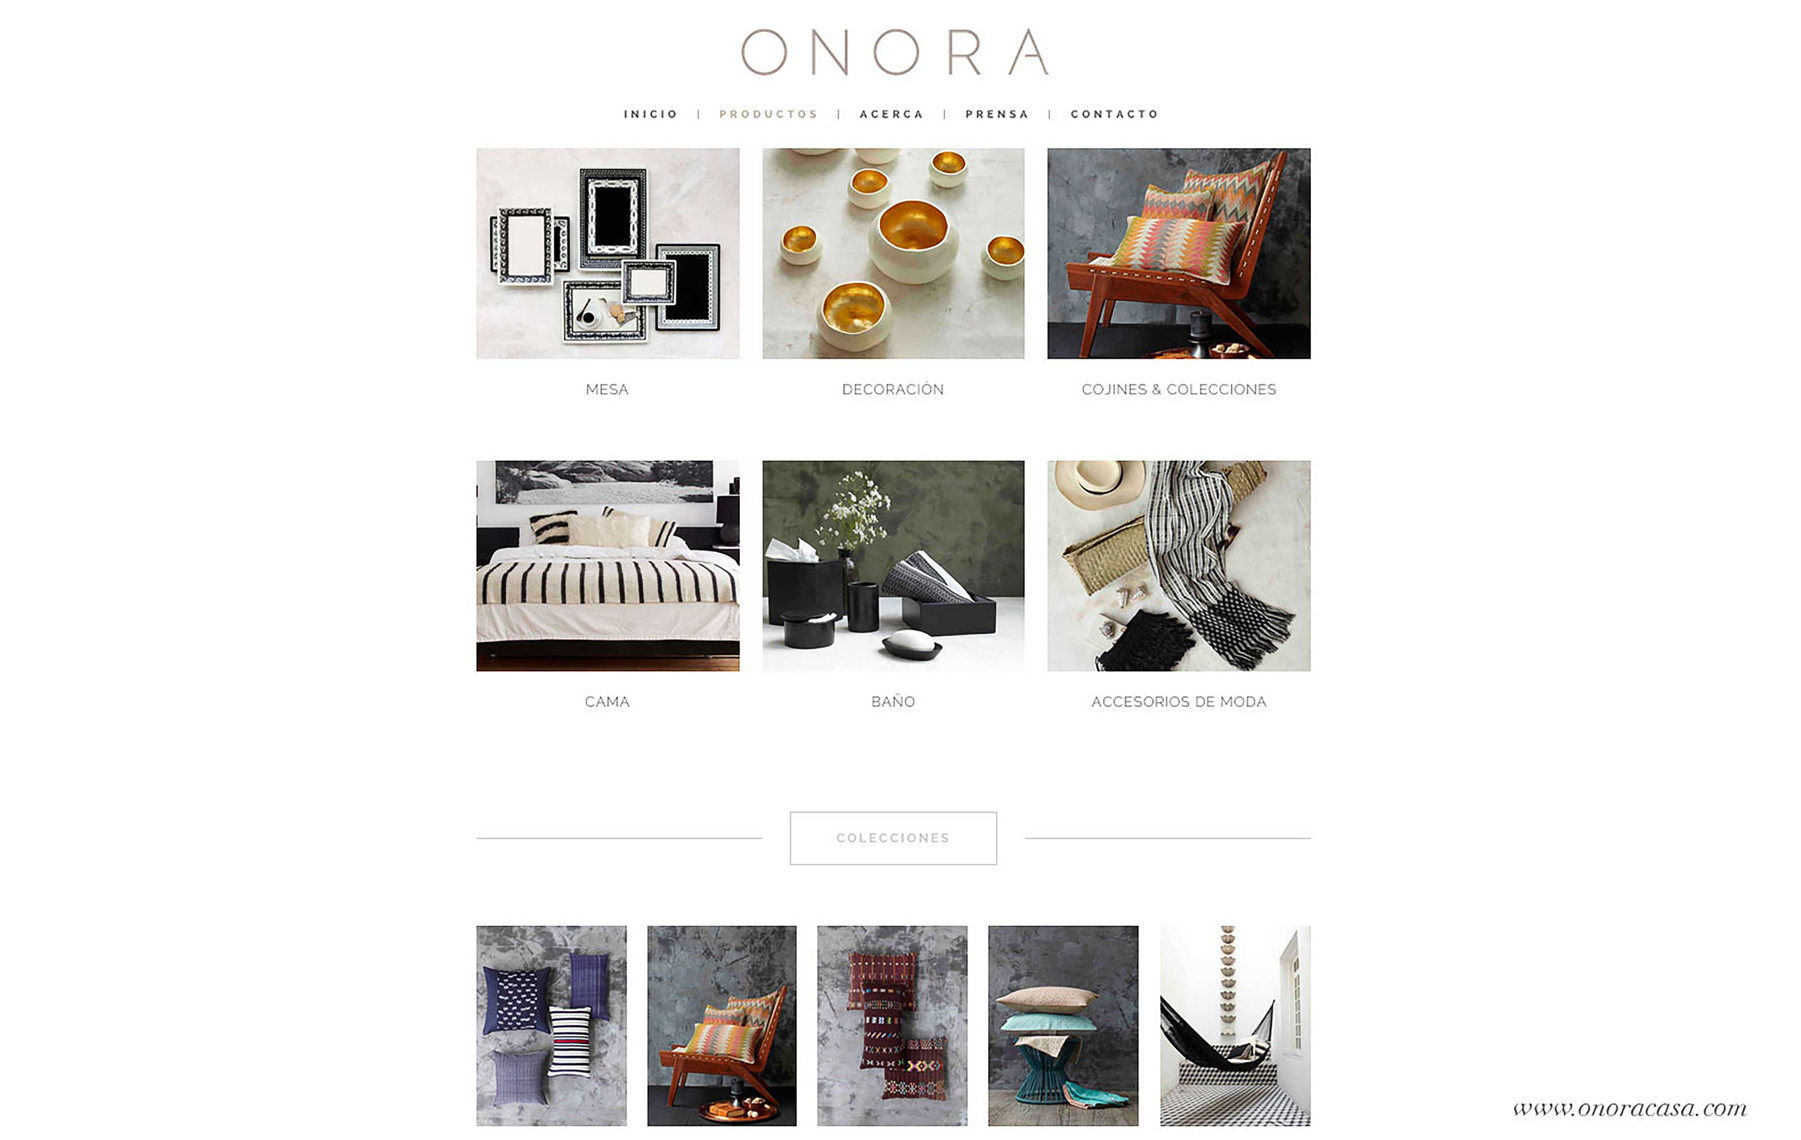 Onora_1